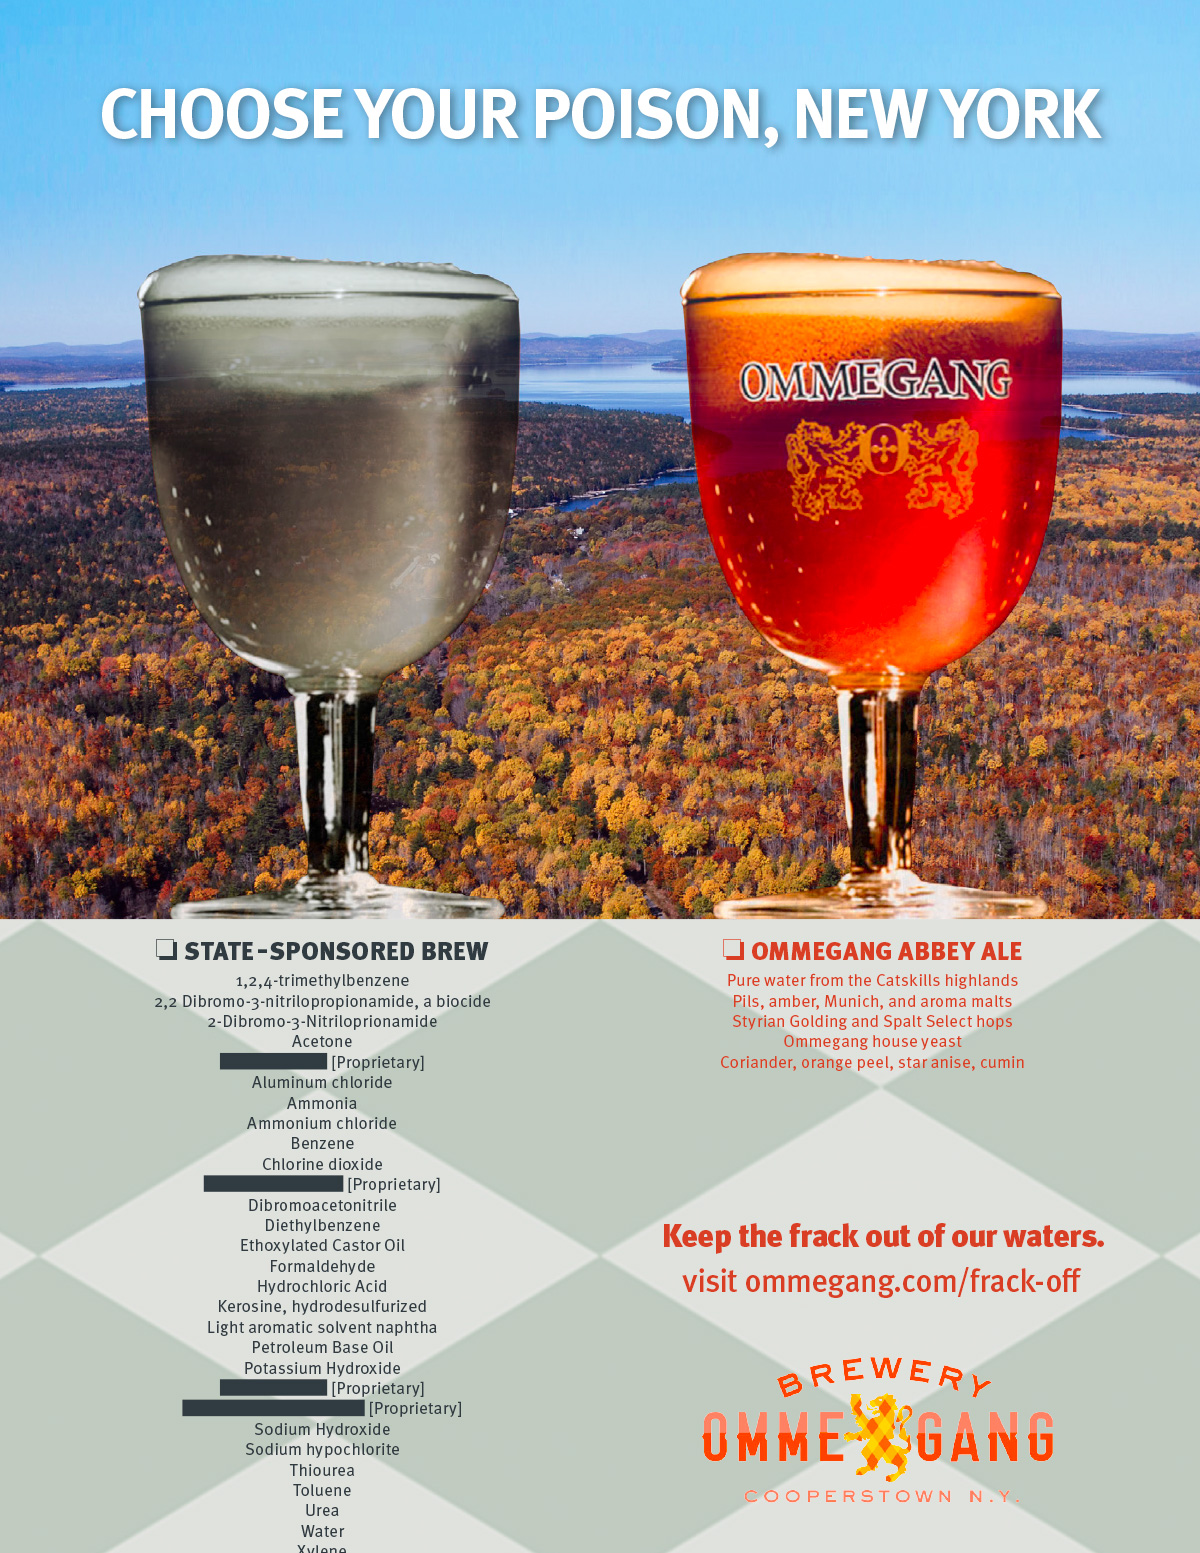 Ommegang Abbey Ale anti-fracking print ad